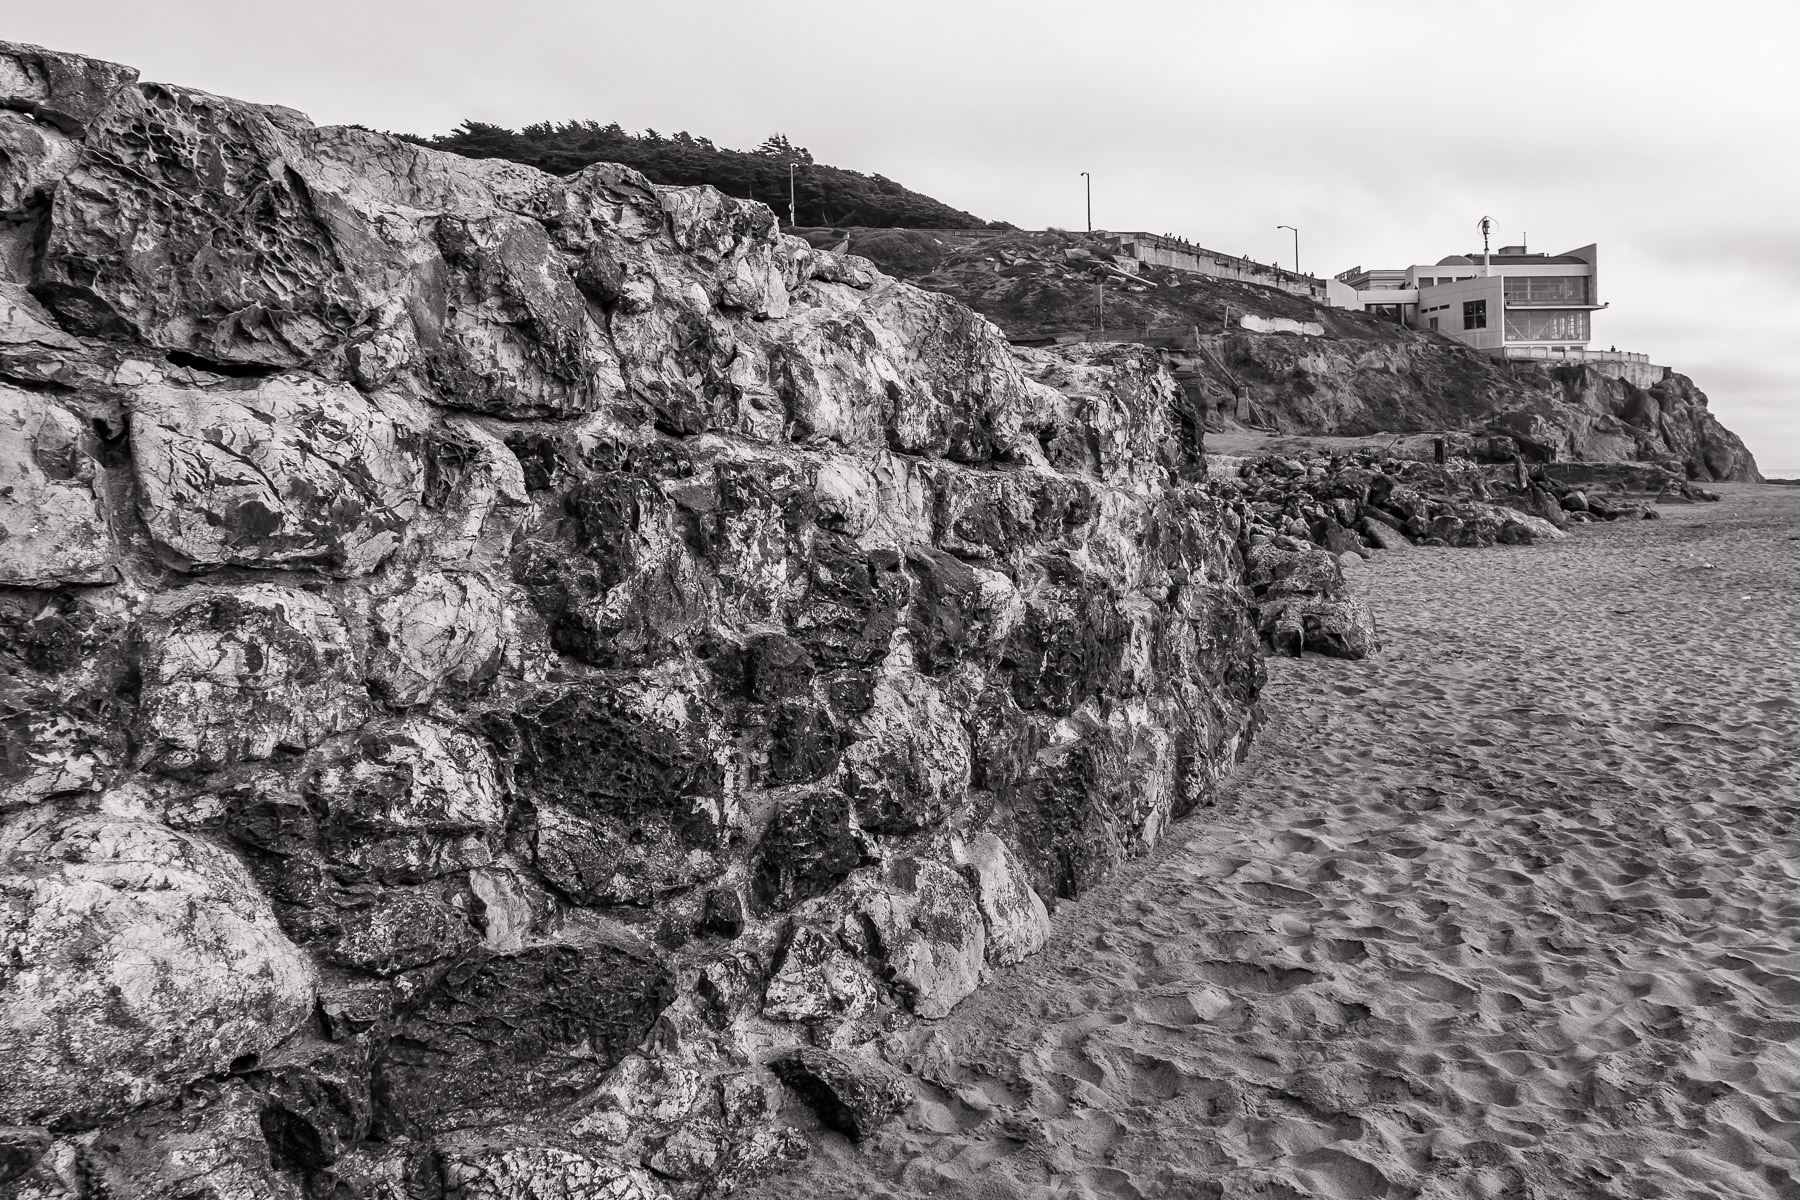 A rock wall—part of the ruins of the Sutro Baths—leads towards the modern wing of the historic Cliff House restaurant on the beach at Lands End, San Francisco.